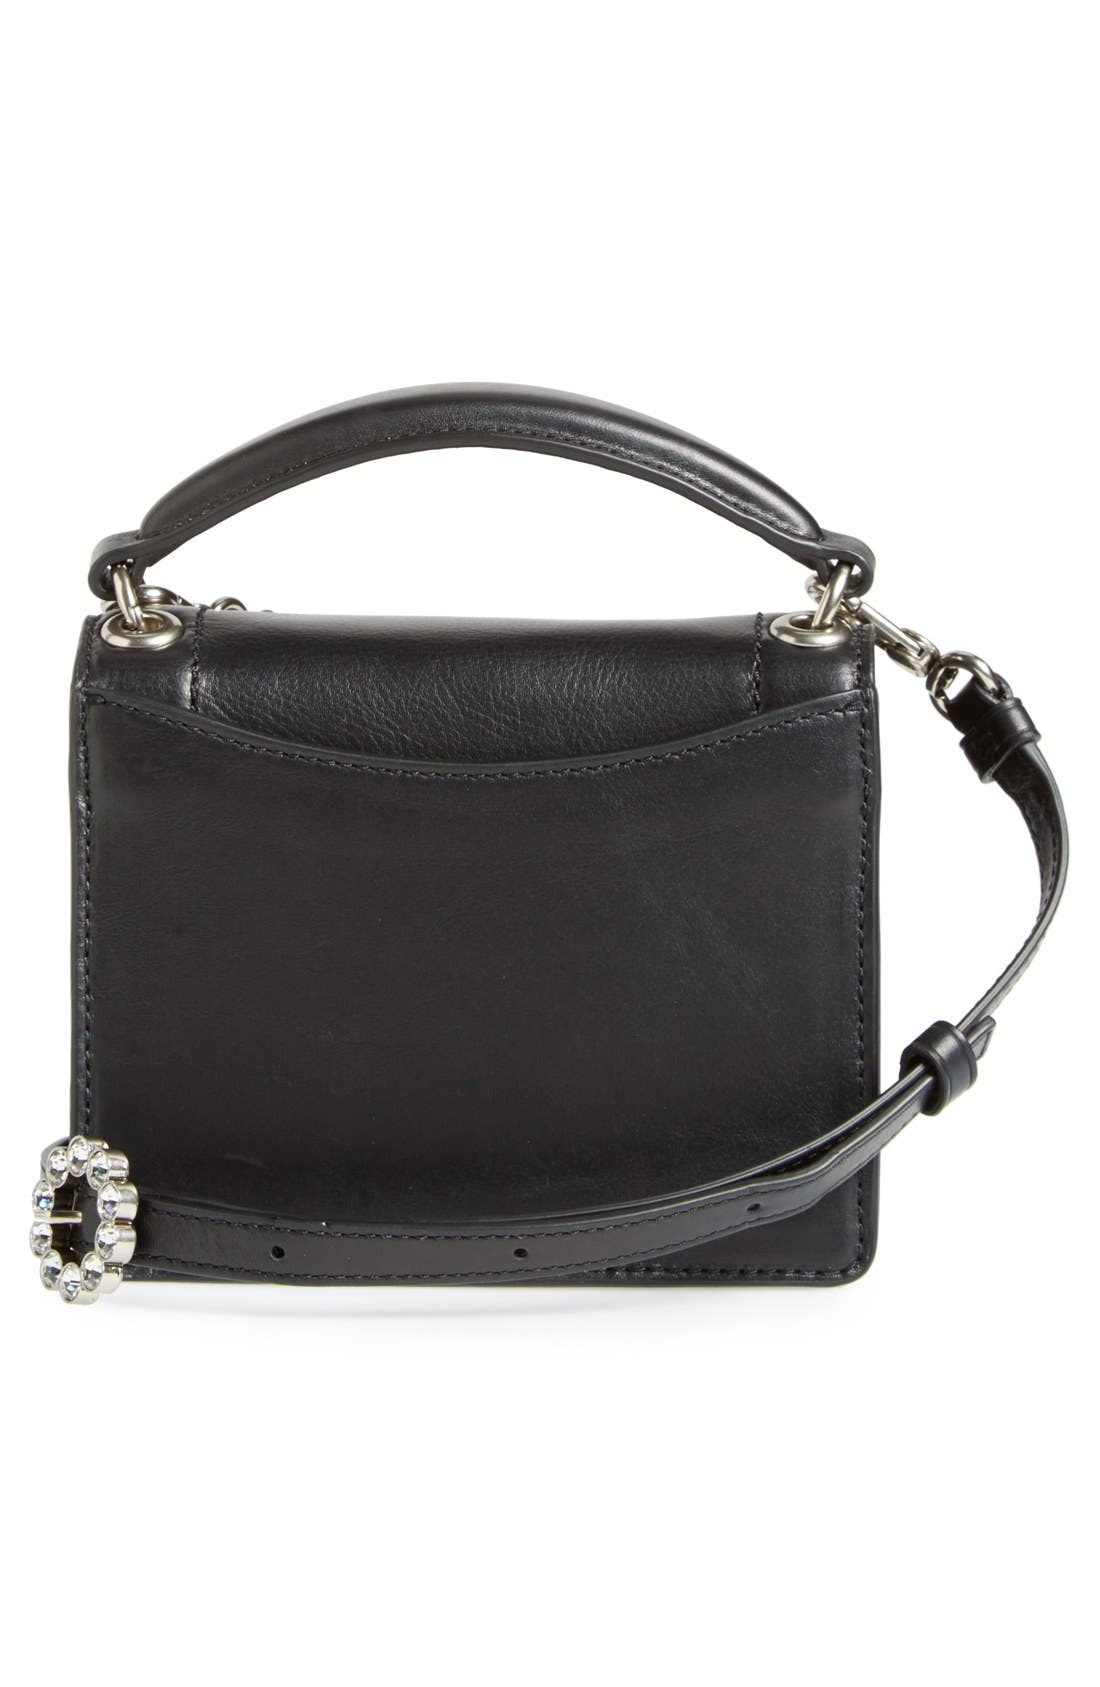 MARC JACOBS,                             MARC BY MARC JACOBS 'The Box' Crossbody Bag,                             Alternate thumbnail 3, color,                             001